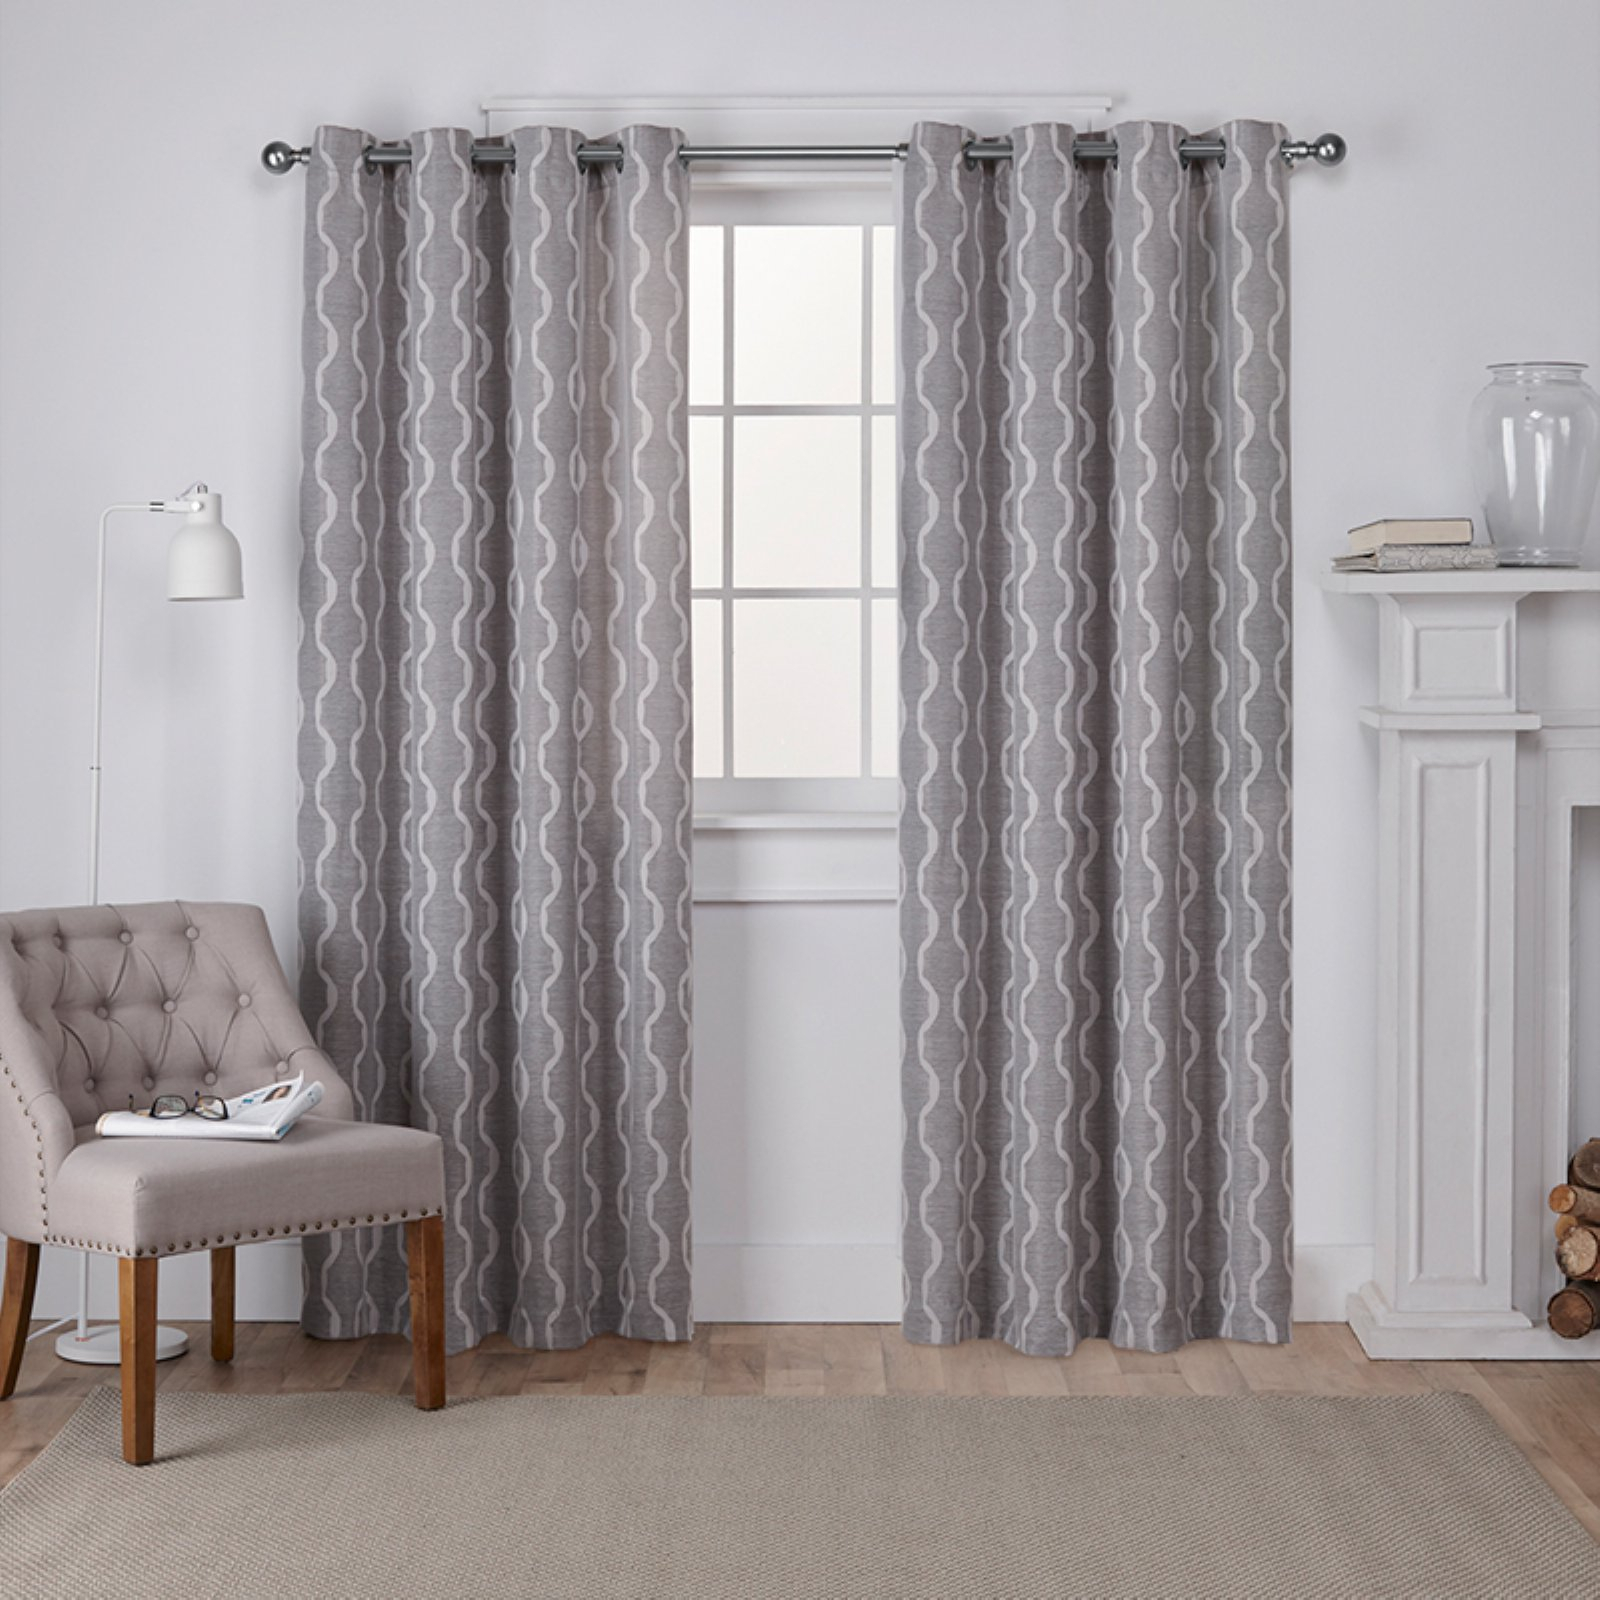 Exclusive Home Baroque Window Curtain Panel Pair | Products In Kaiden Geometric Room Darkening Window Curtains (View 12 of 20)